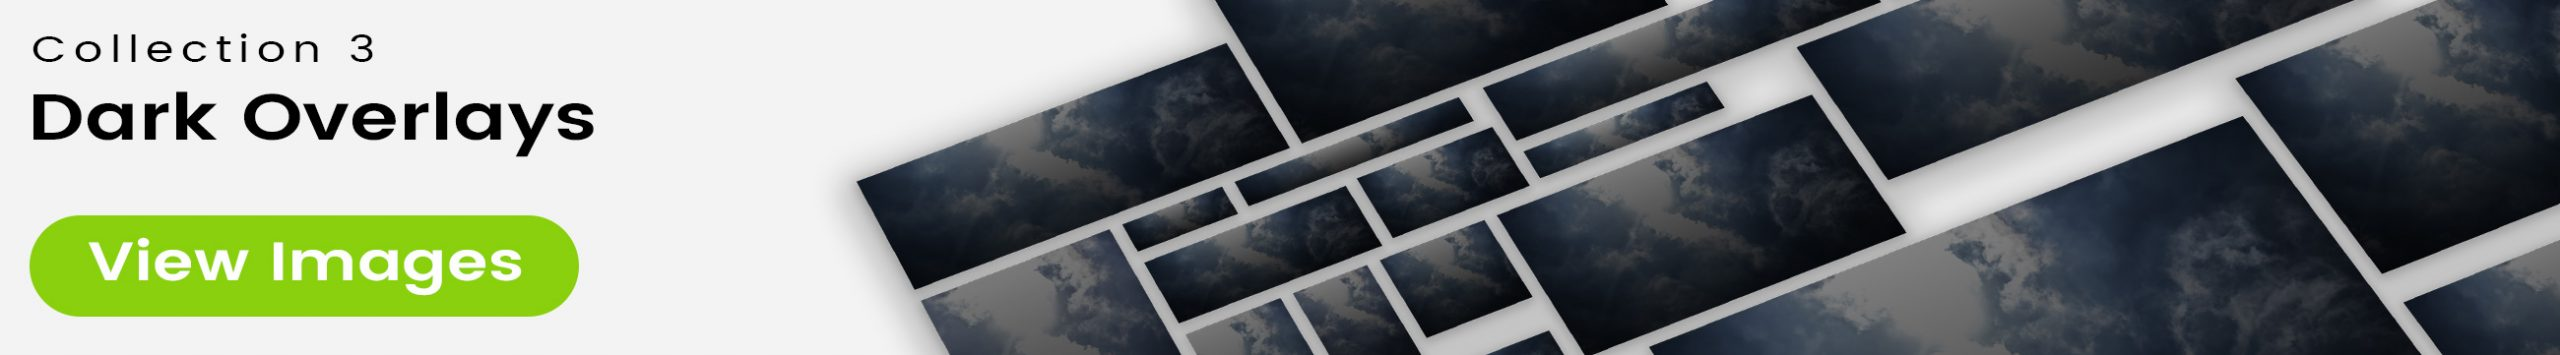 See 25 bonus images included with clouds stock image 9462. Collection 3 of 4 features a dark overlay design.